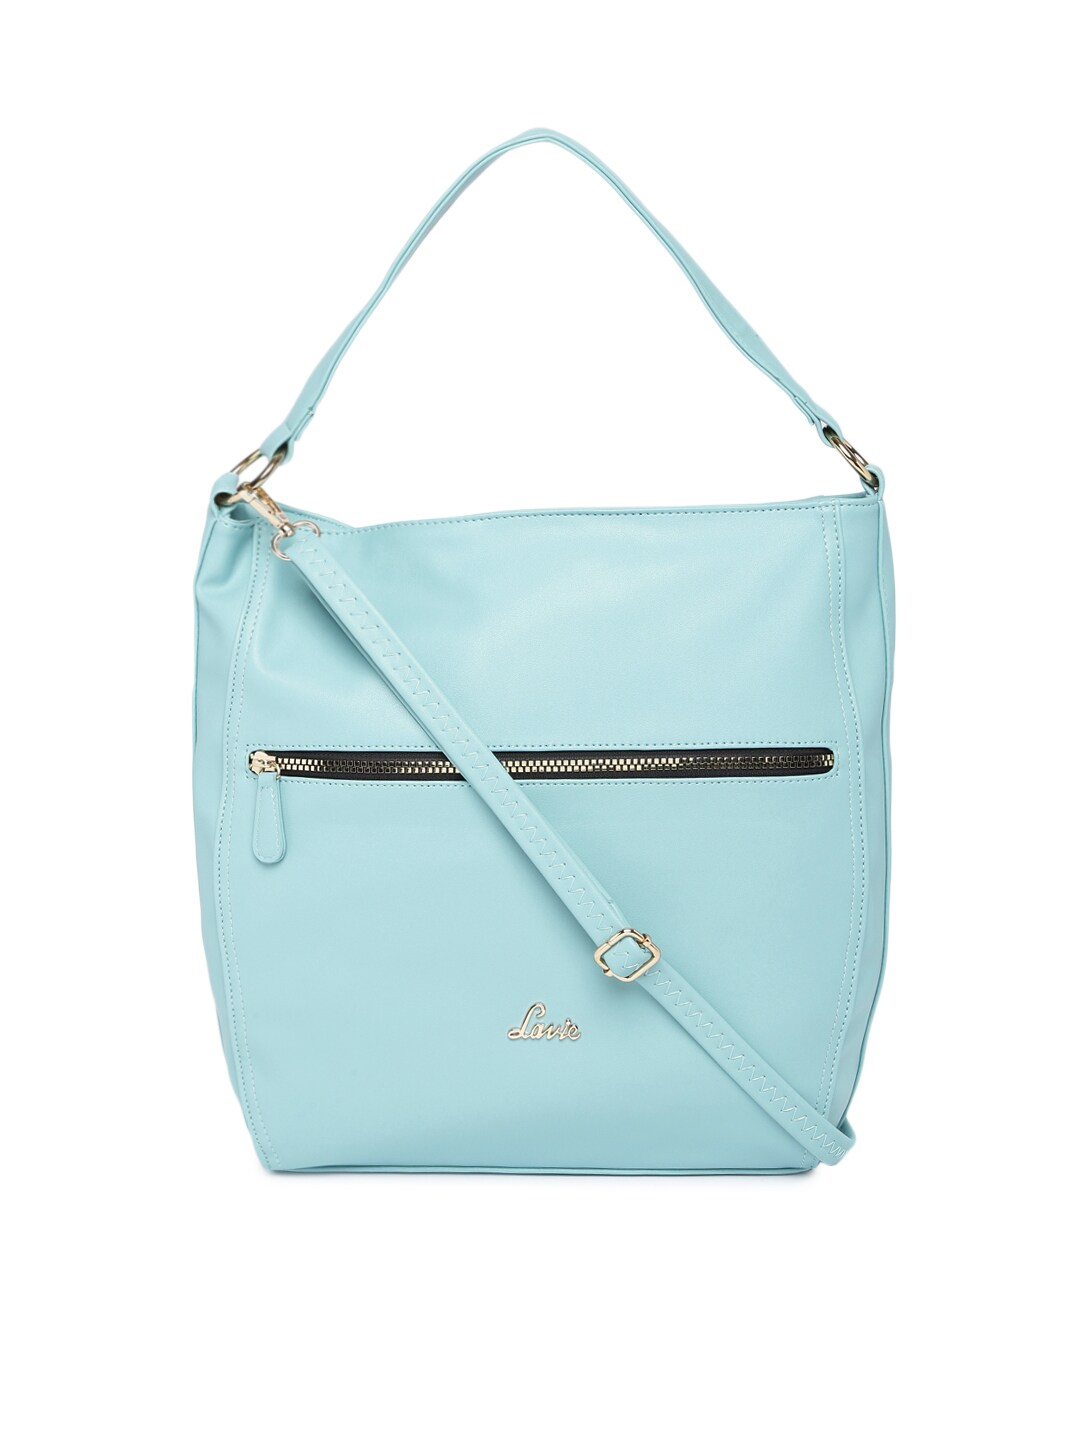 026e05c31517 Lavie Bags - Buy Lavie Bags Online in India